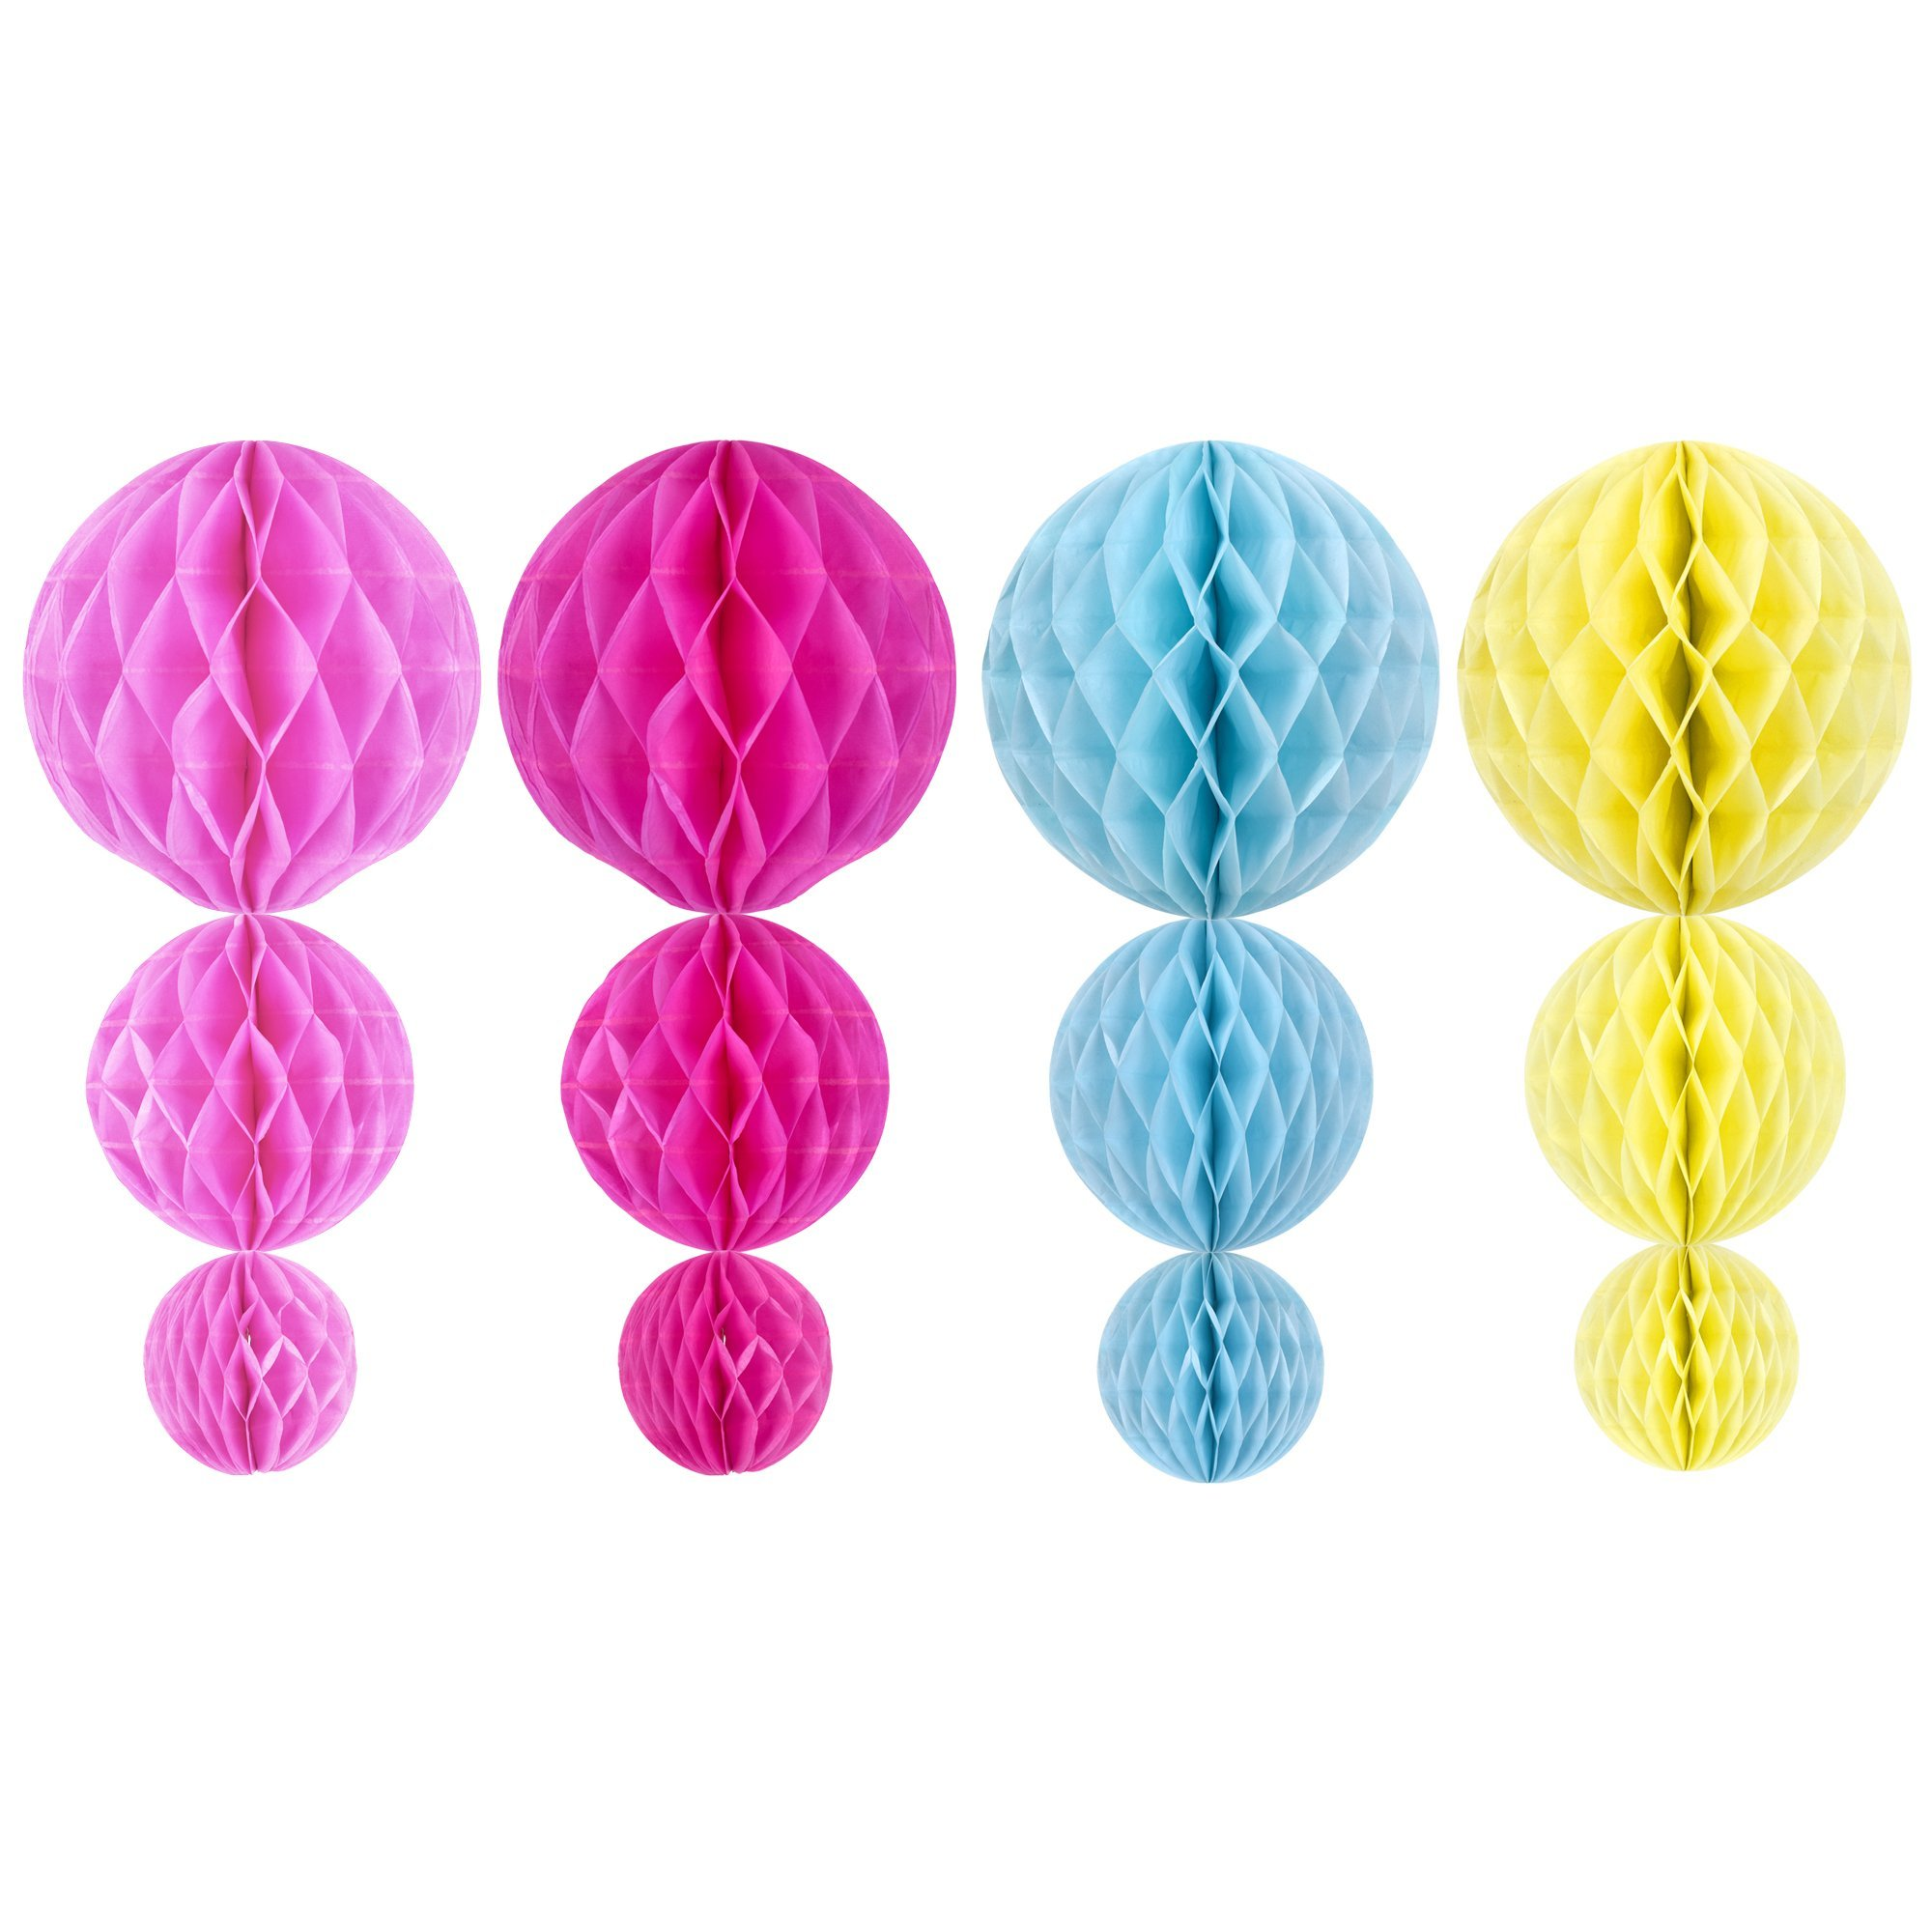 Kloud City ® 4'', 6'' and 8'' 4Color Assorted Decorative Tissue Paper Honeycomb Balls, Tissue Paper Flower Ball Bee Pom Poms for Birthday Decoration, Wedding Decor, Party Decor by KLOUD City